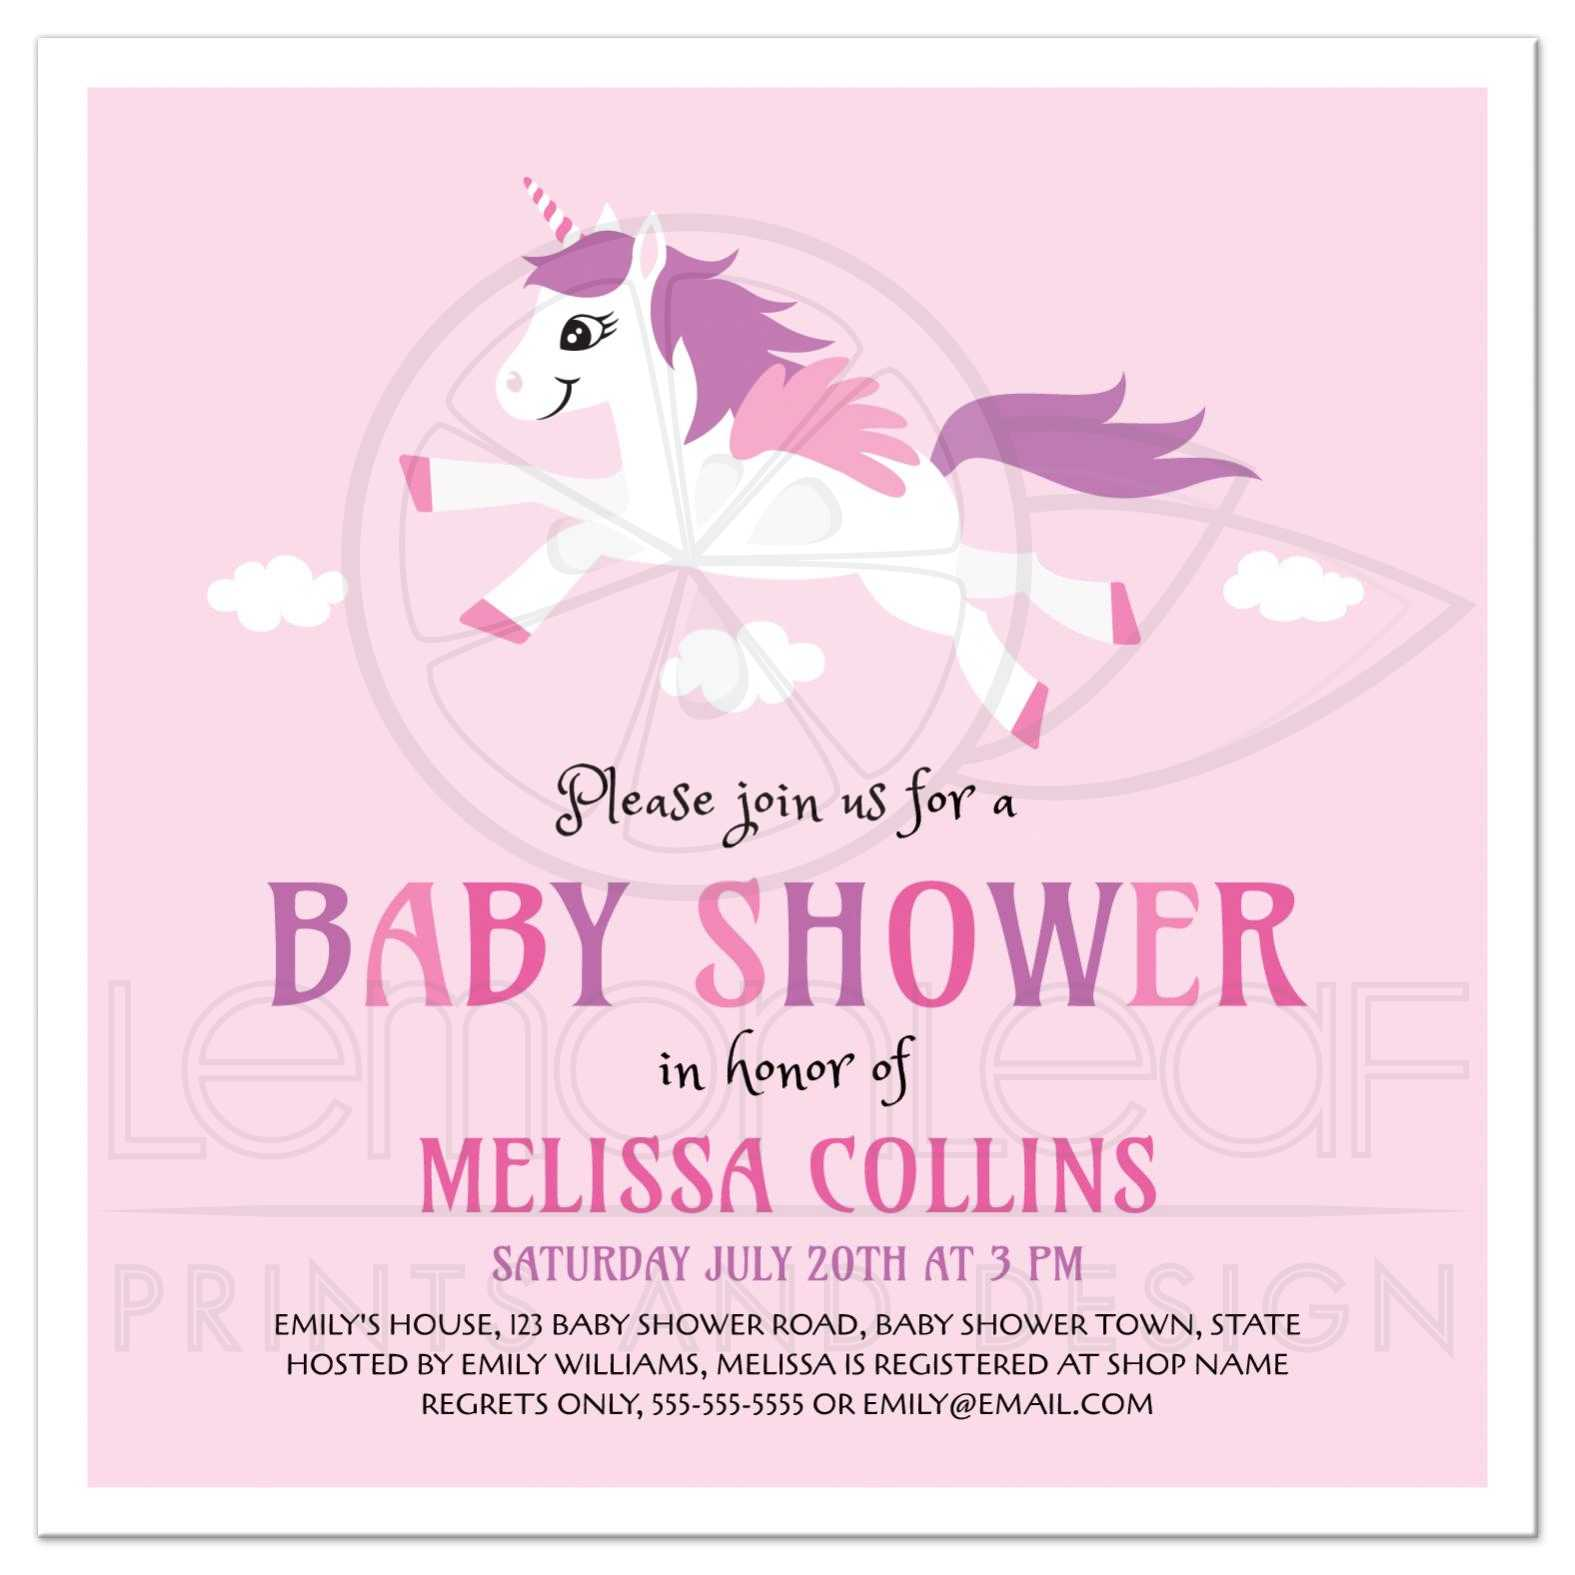 Cute unicorn baby shower invitation pink and purple for girls cute pink baby shower invitation for girl showers with unicorn cartoon illustration filmwisefo